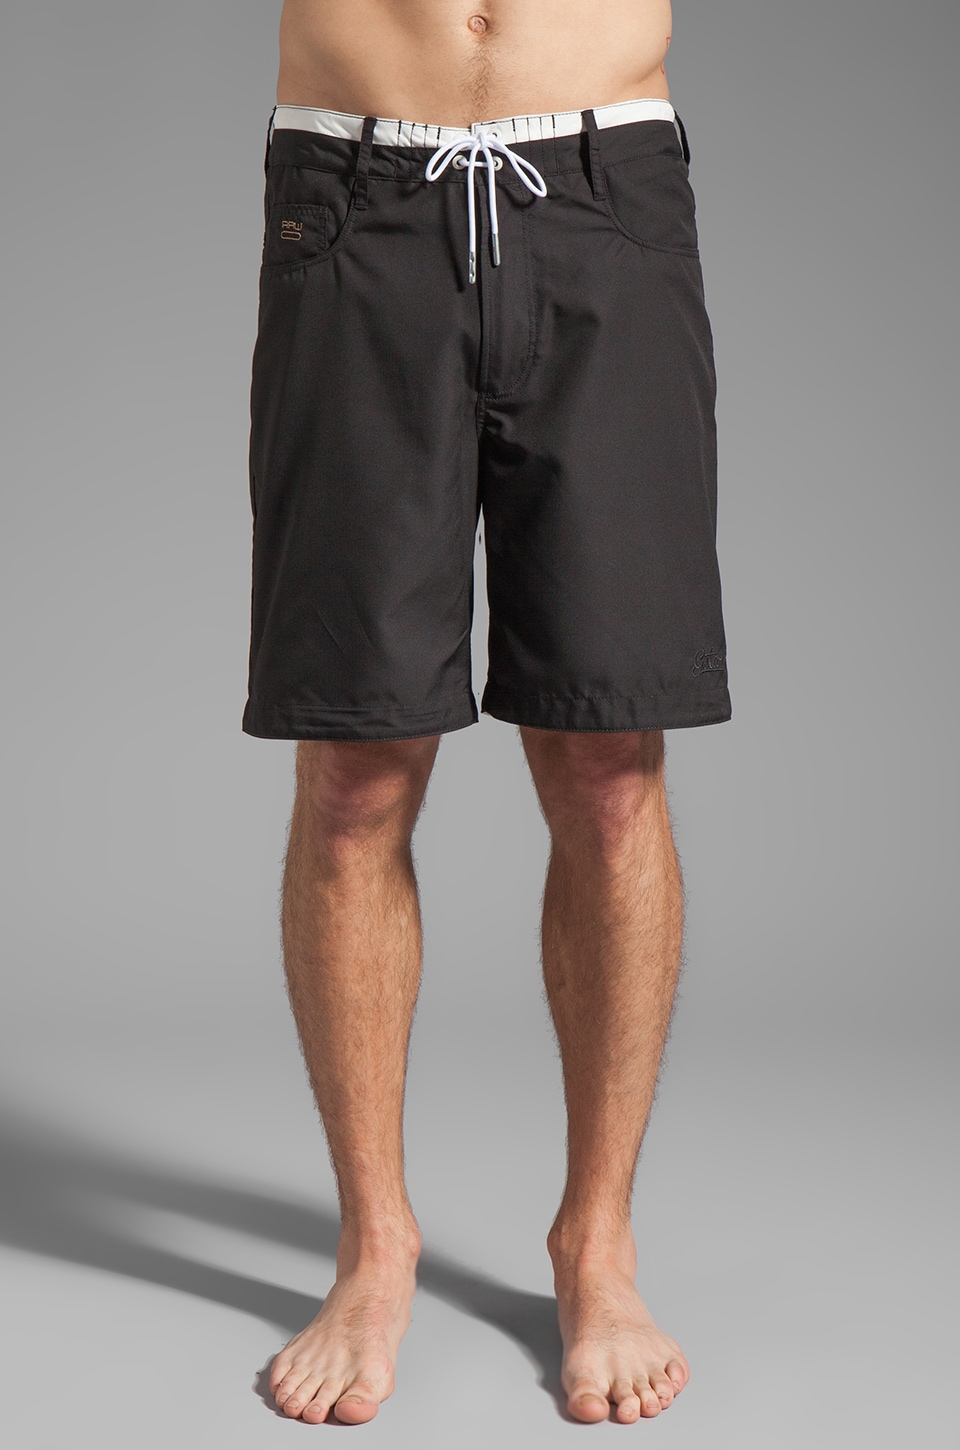 G-Star Iconic Board Short in Black